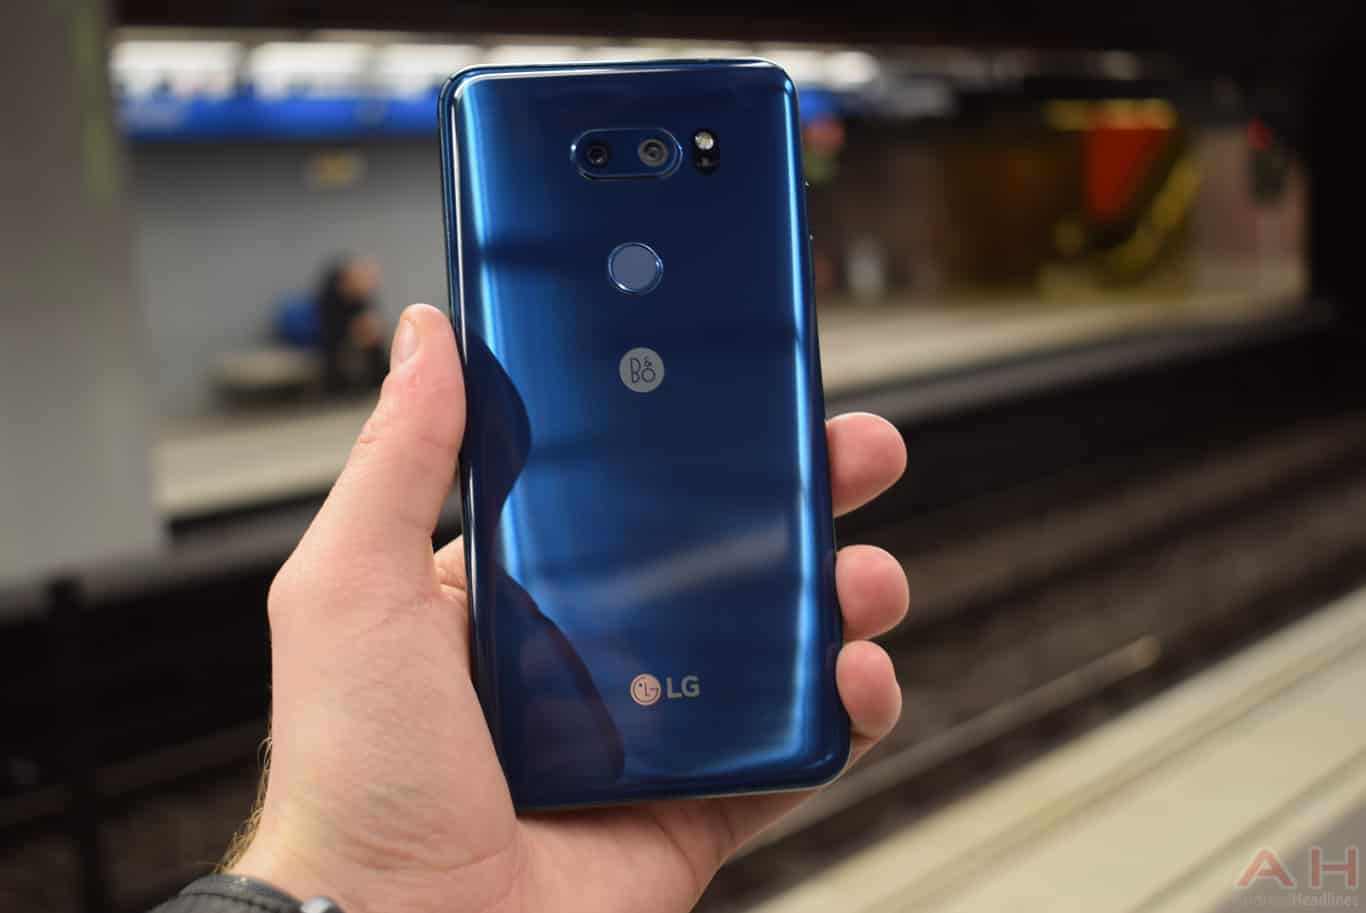 LG unveils new V30S smartphones with more memory, AI camera features